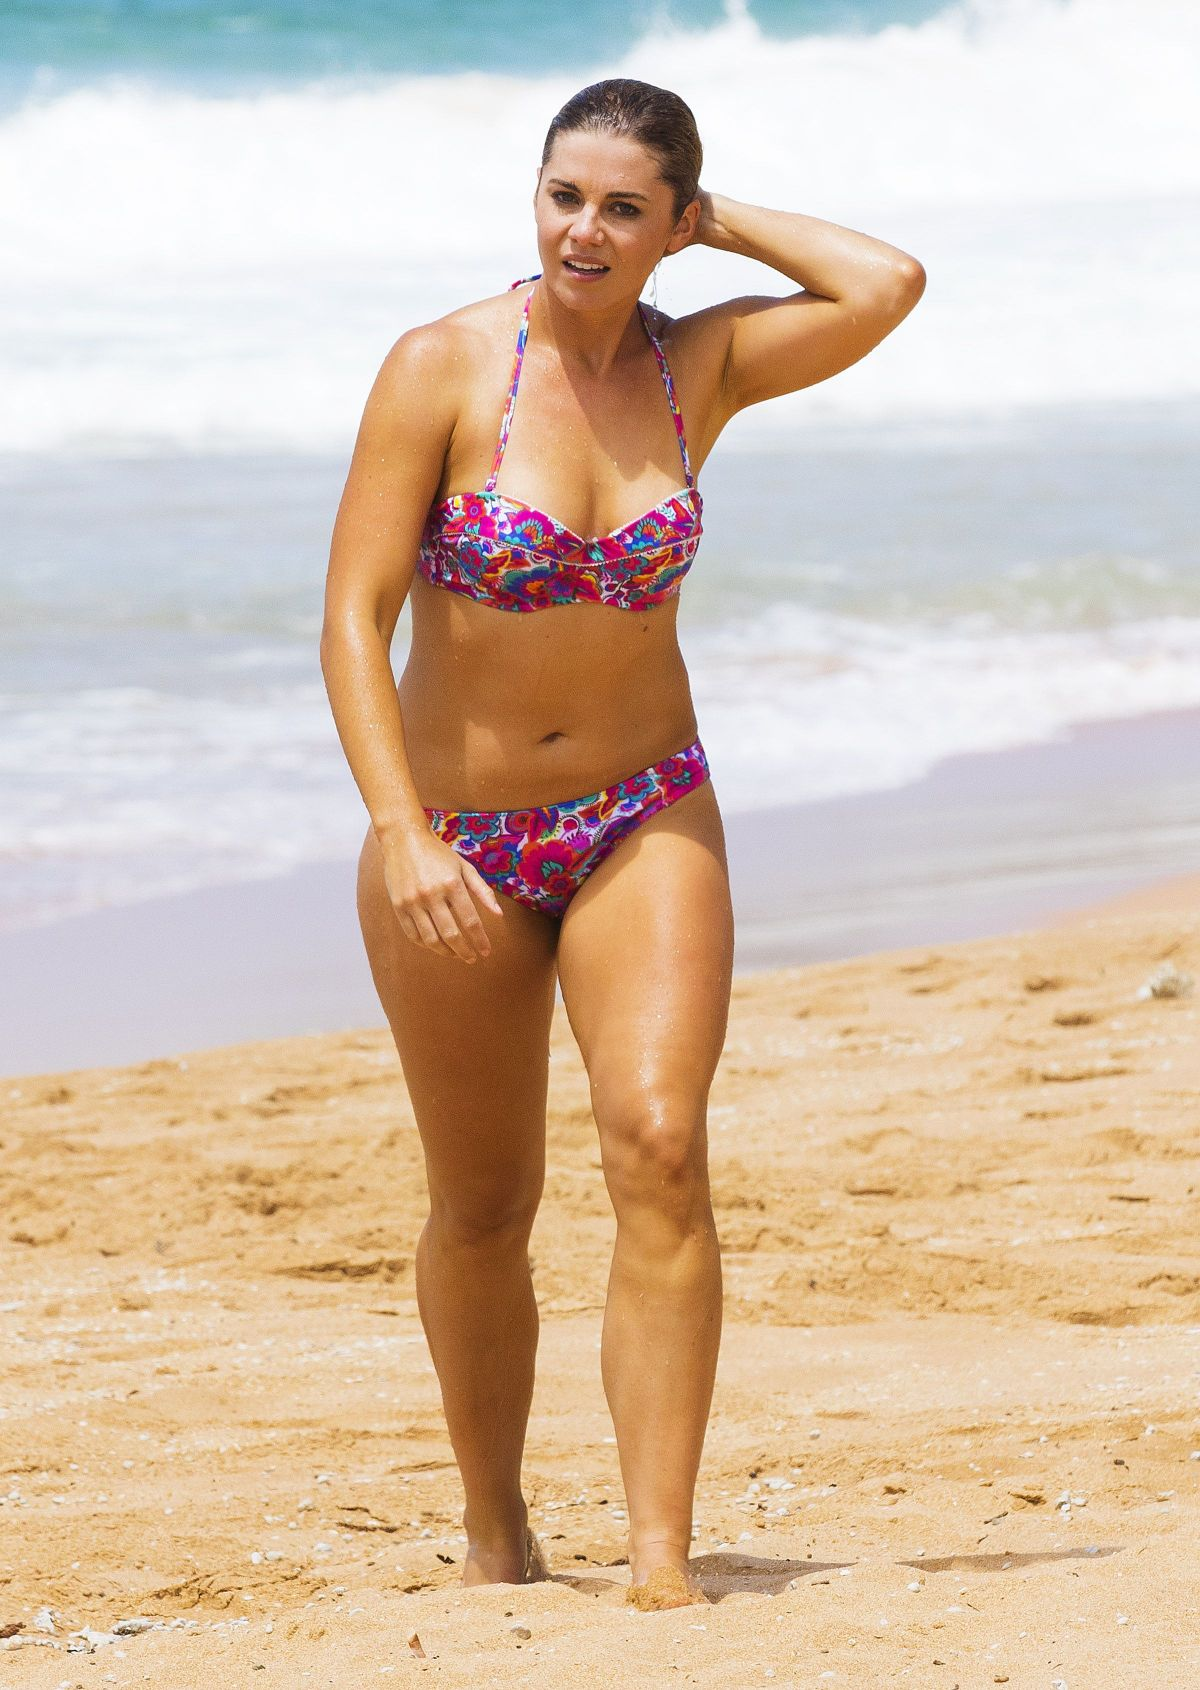 JESSICA GRACE SMITH on the Set of Home & Away on the Beach in Sydney